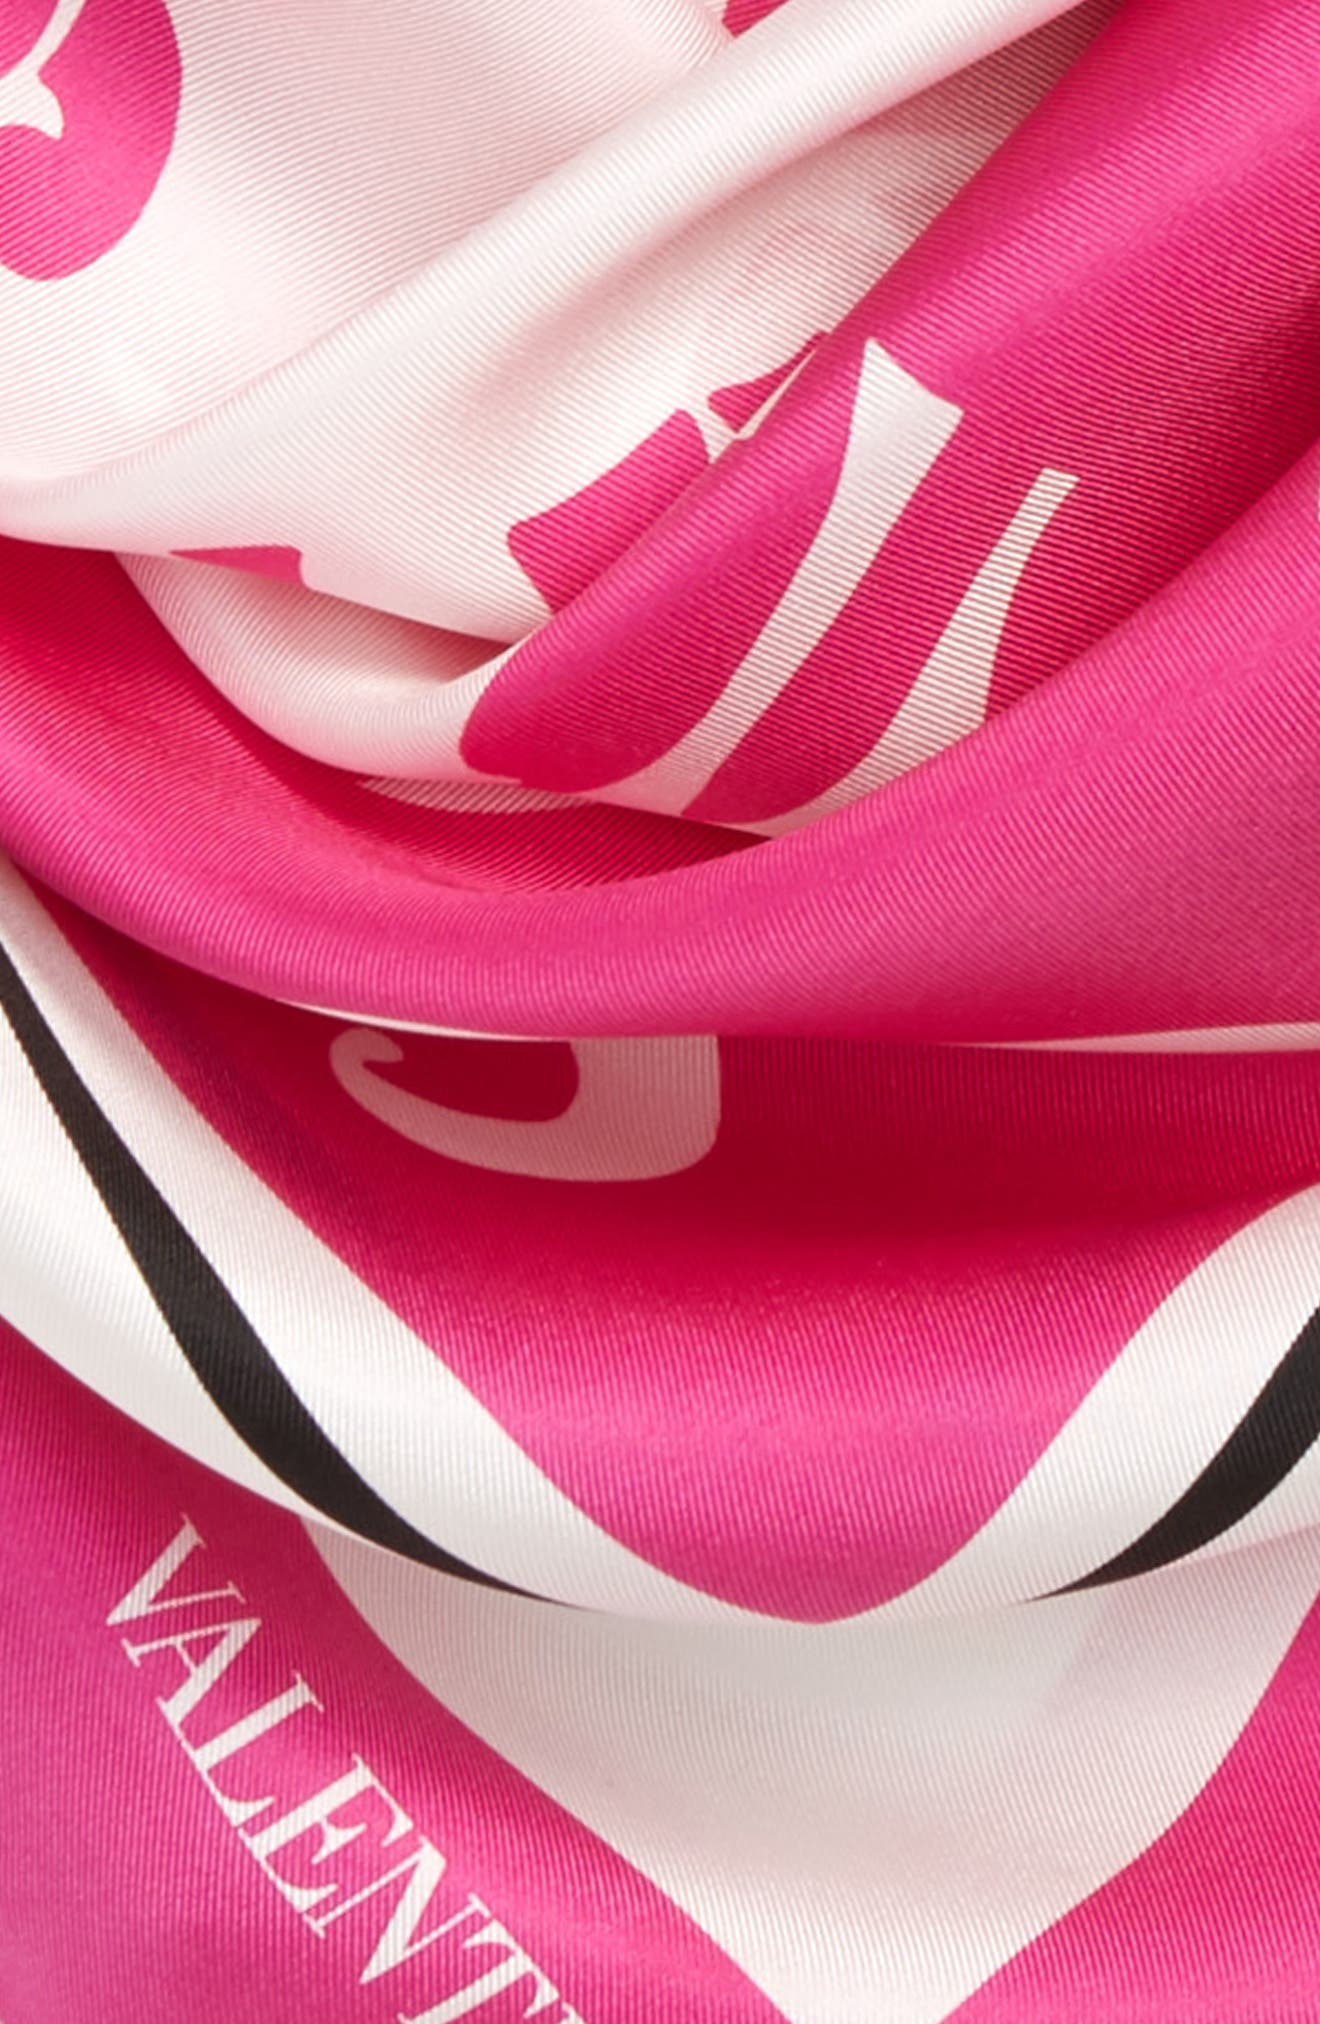 Waves Silk Scarf,                             Alternate thumbnail 3, color,                             PINK